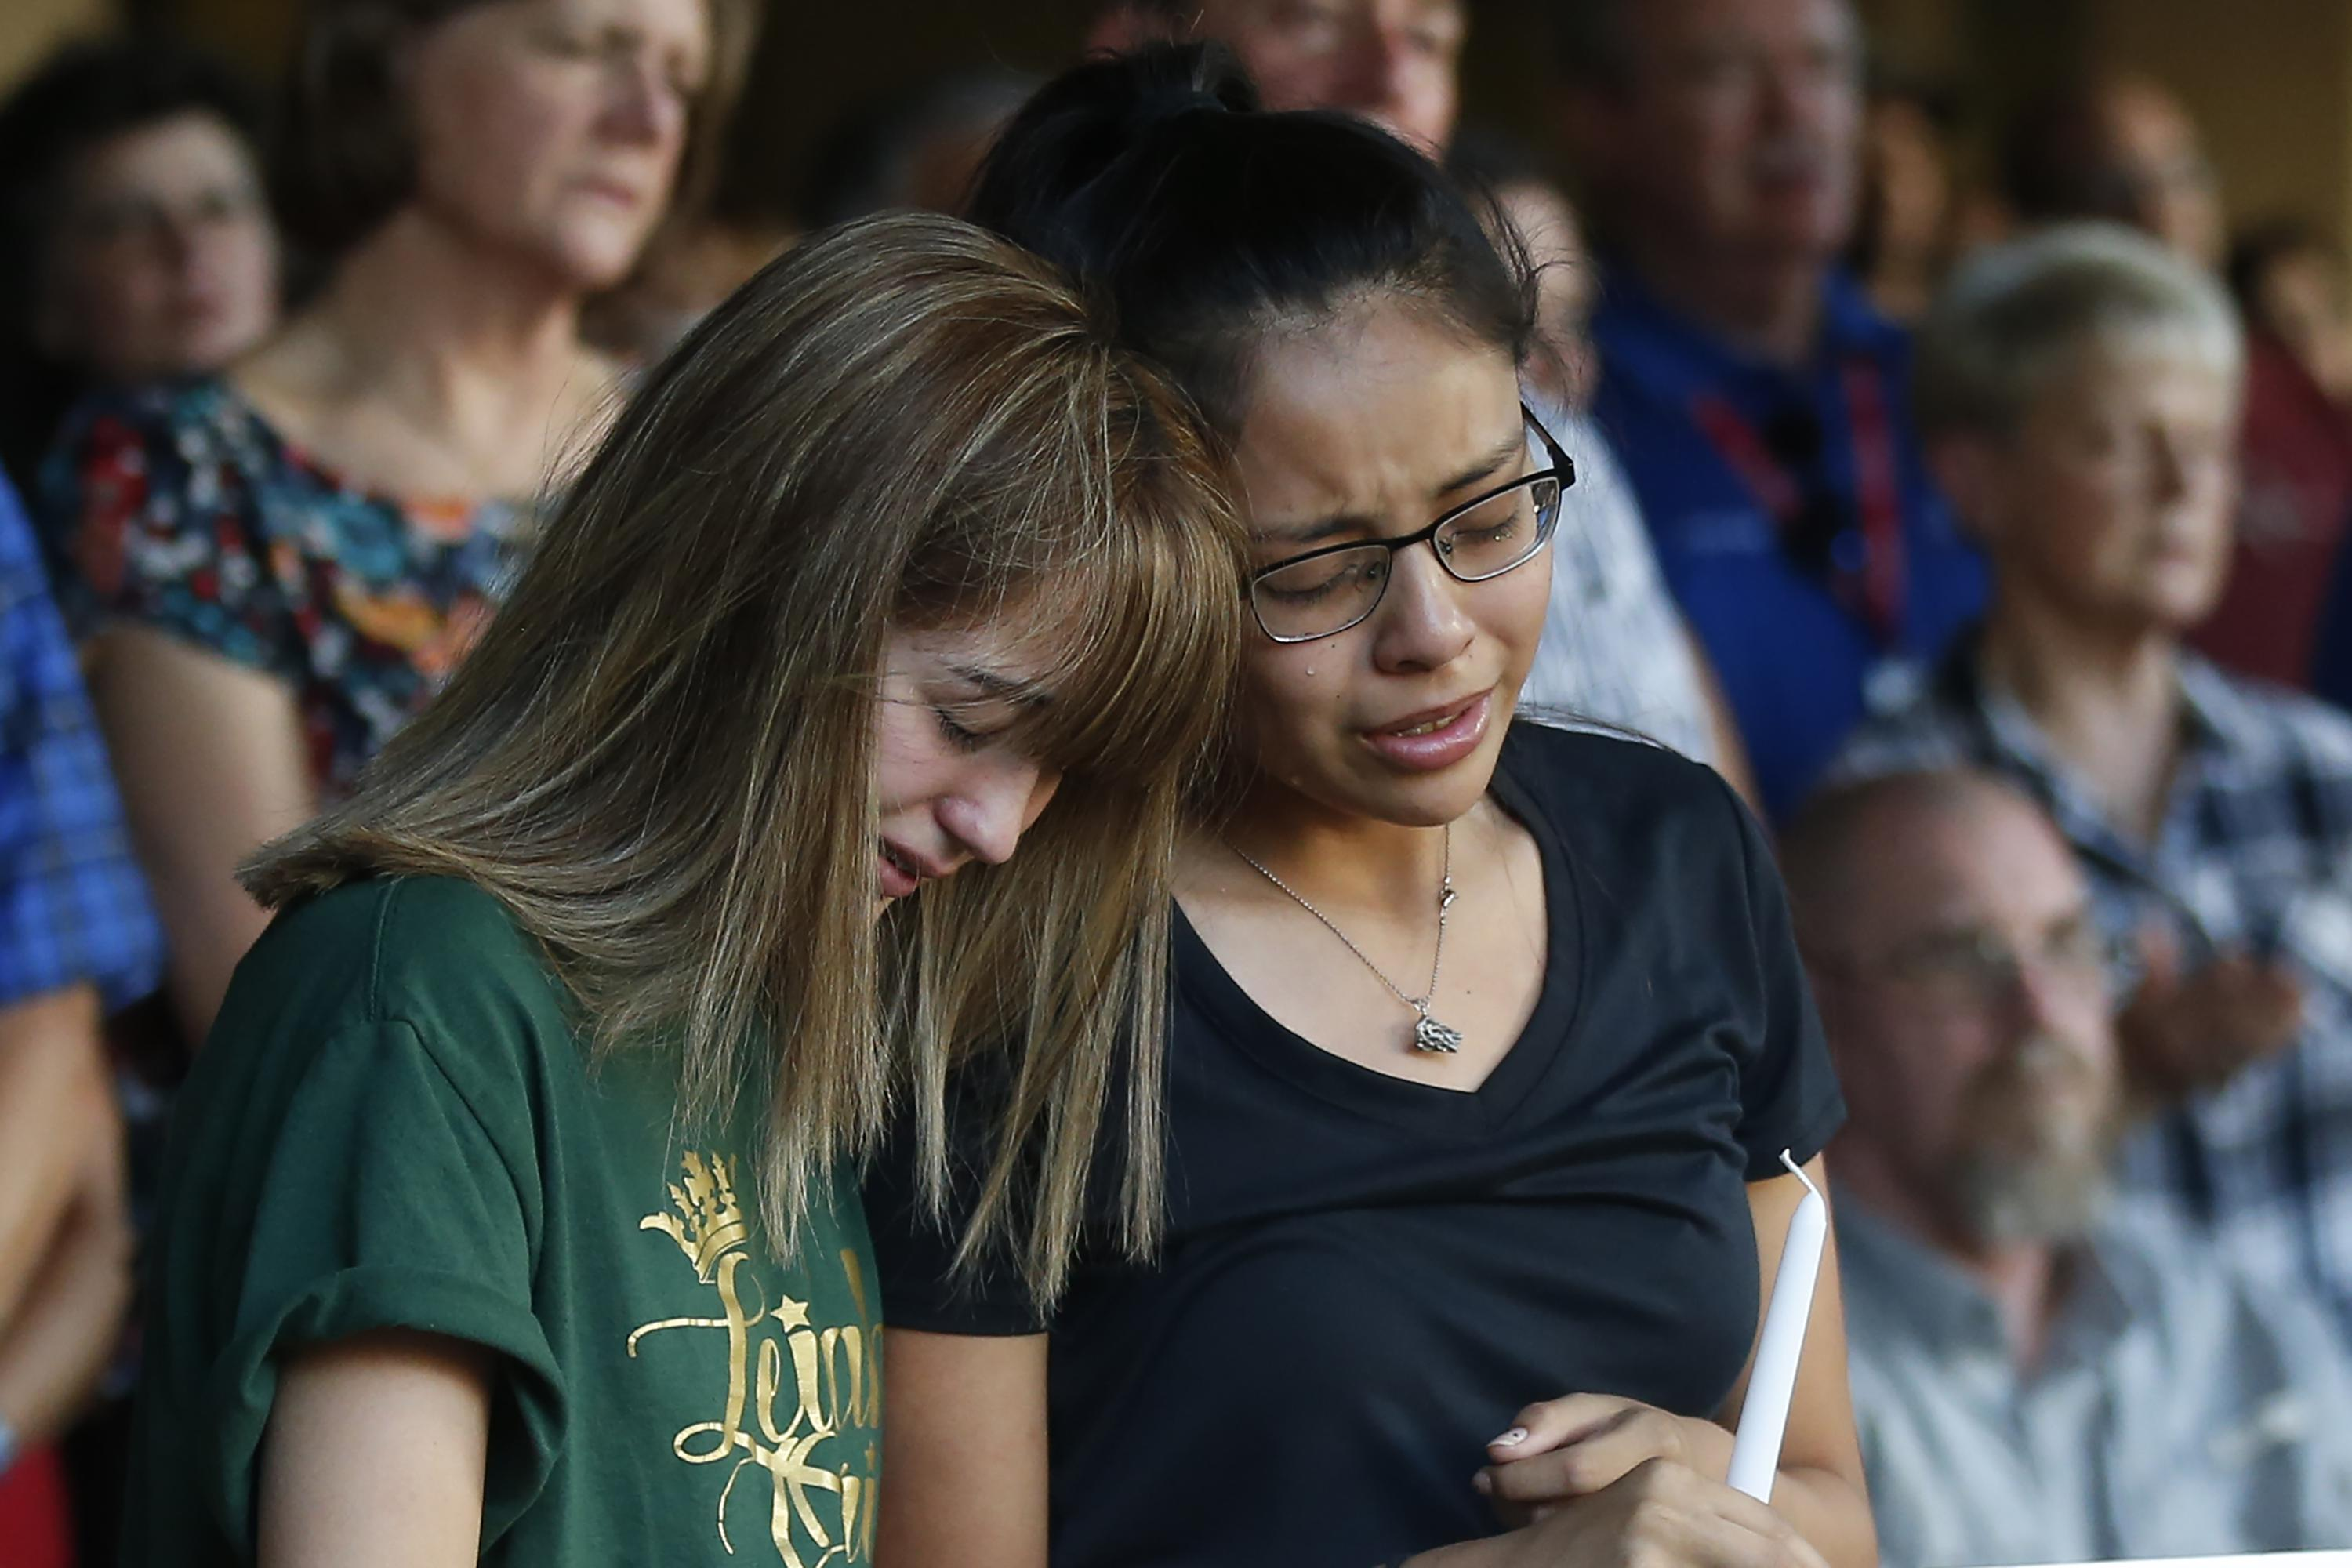 FBI: West Texas gunman 'was on a long spiral of going down'